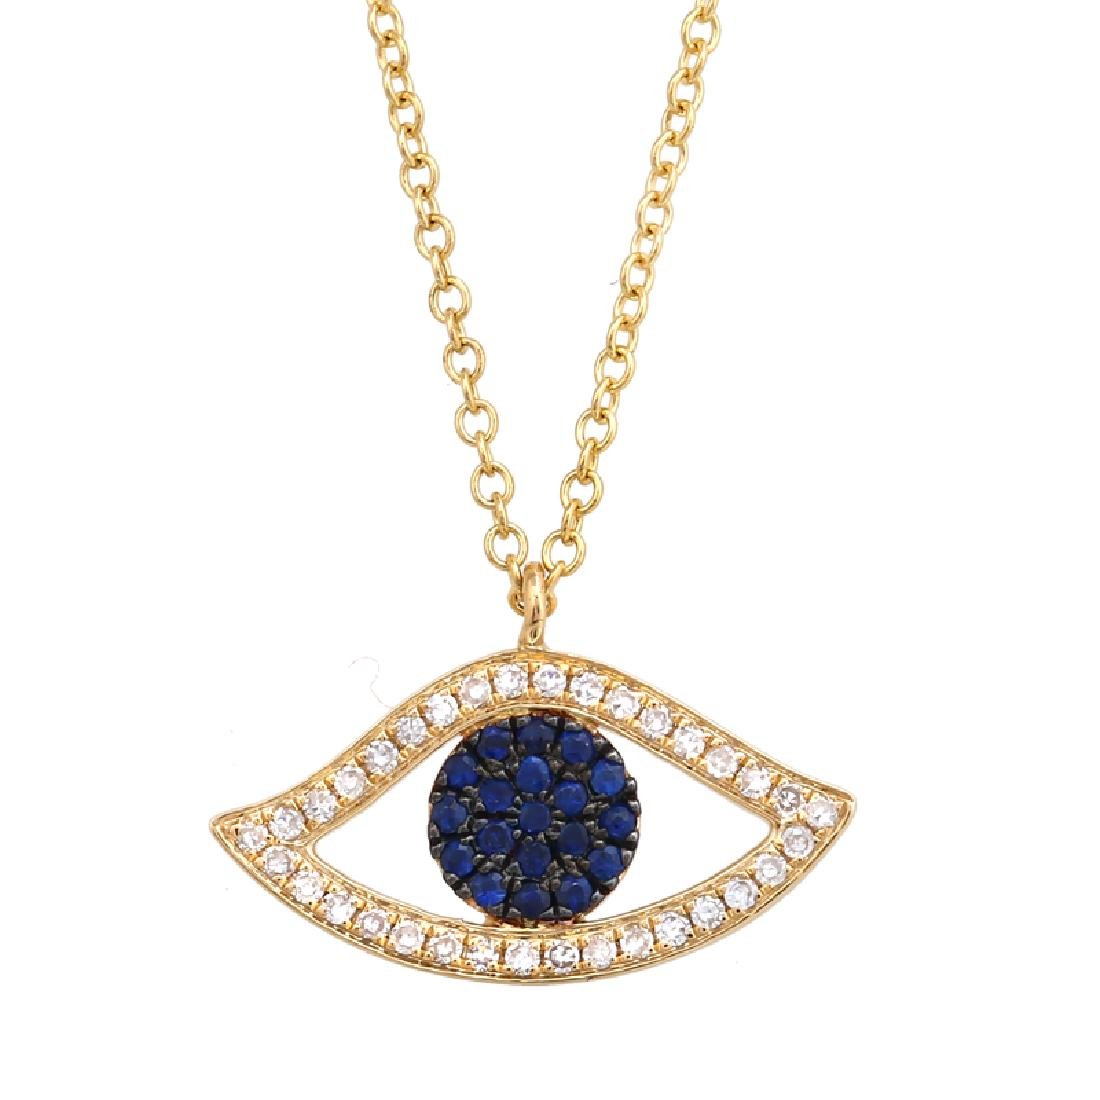 14KT Yellow Gold 0.22ctw Sapphire Pendant With Chain